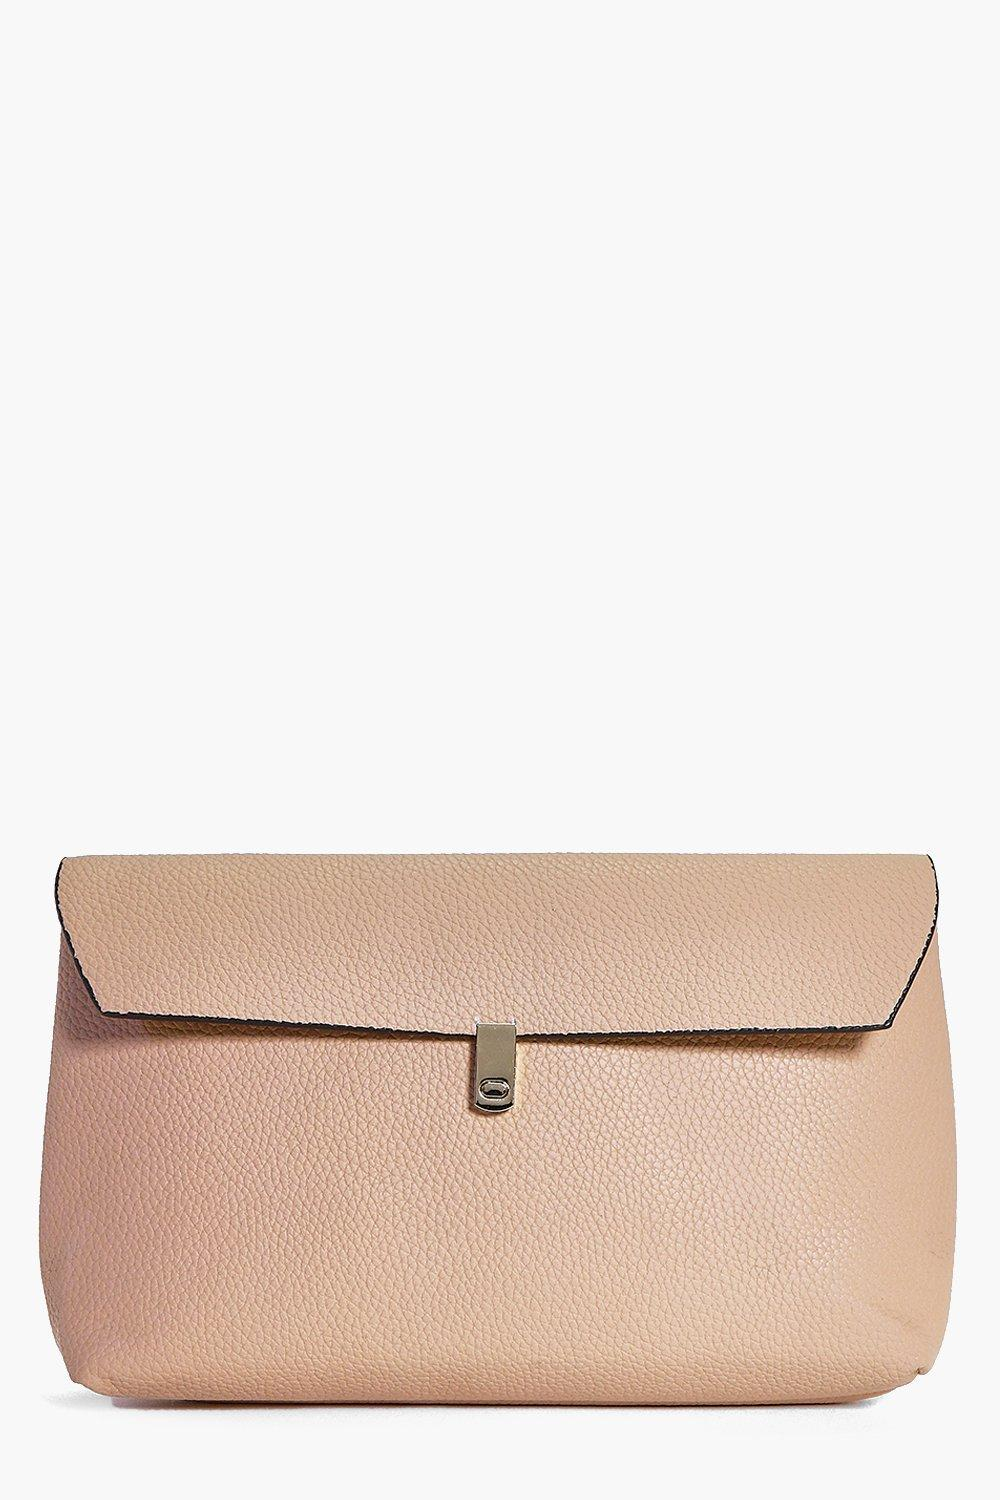 Simple Fold Over Clasp Detail Clutch Bag camel